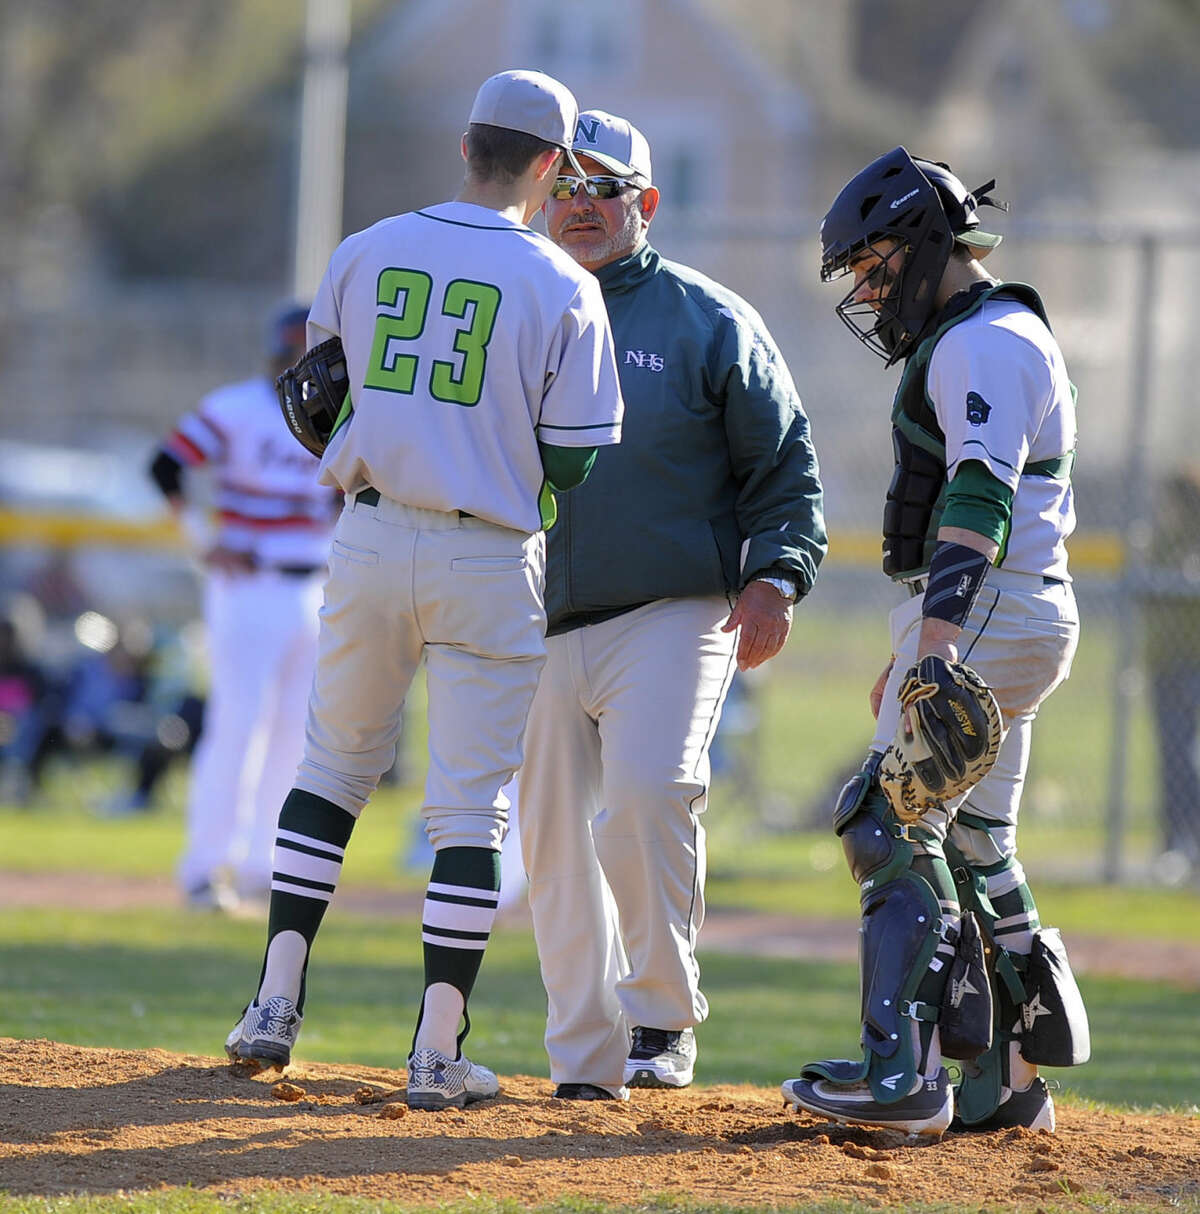 Norwalk defeated Stamford 8-7 in a FCIAC boys baseball game at Stamford High School on April 15, 2016.